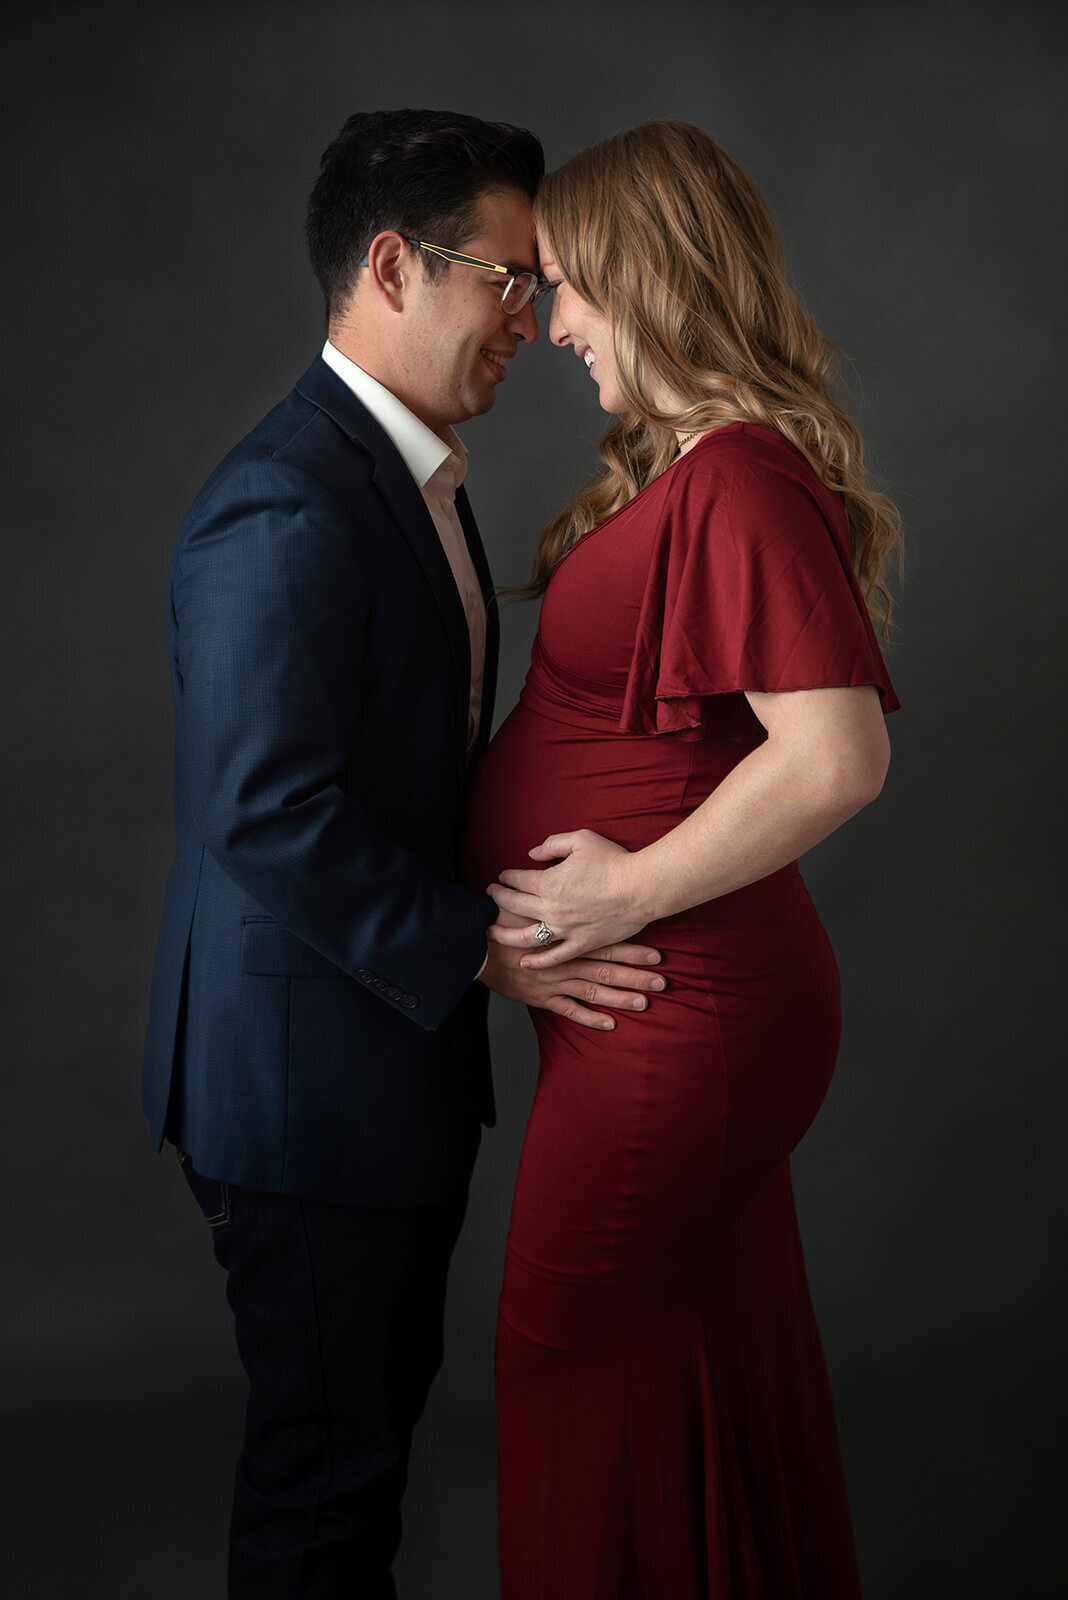 maternity-photography-las-vegas-031